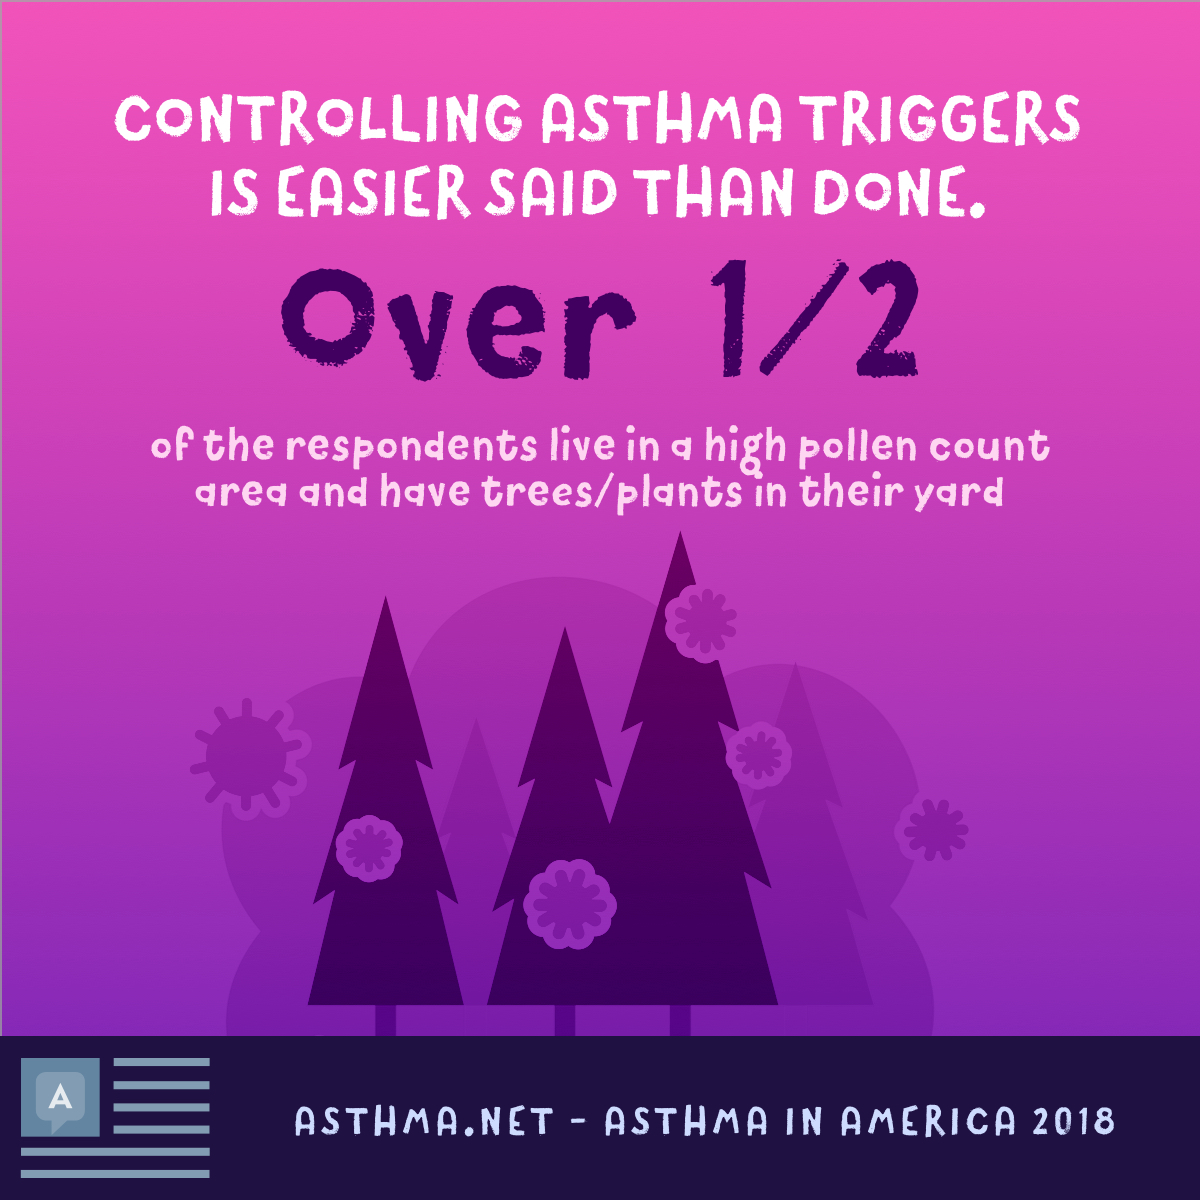 Controlling asthma triggers is easier said than done